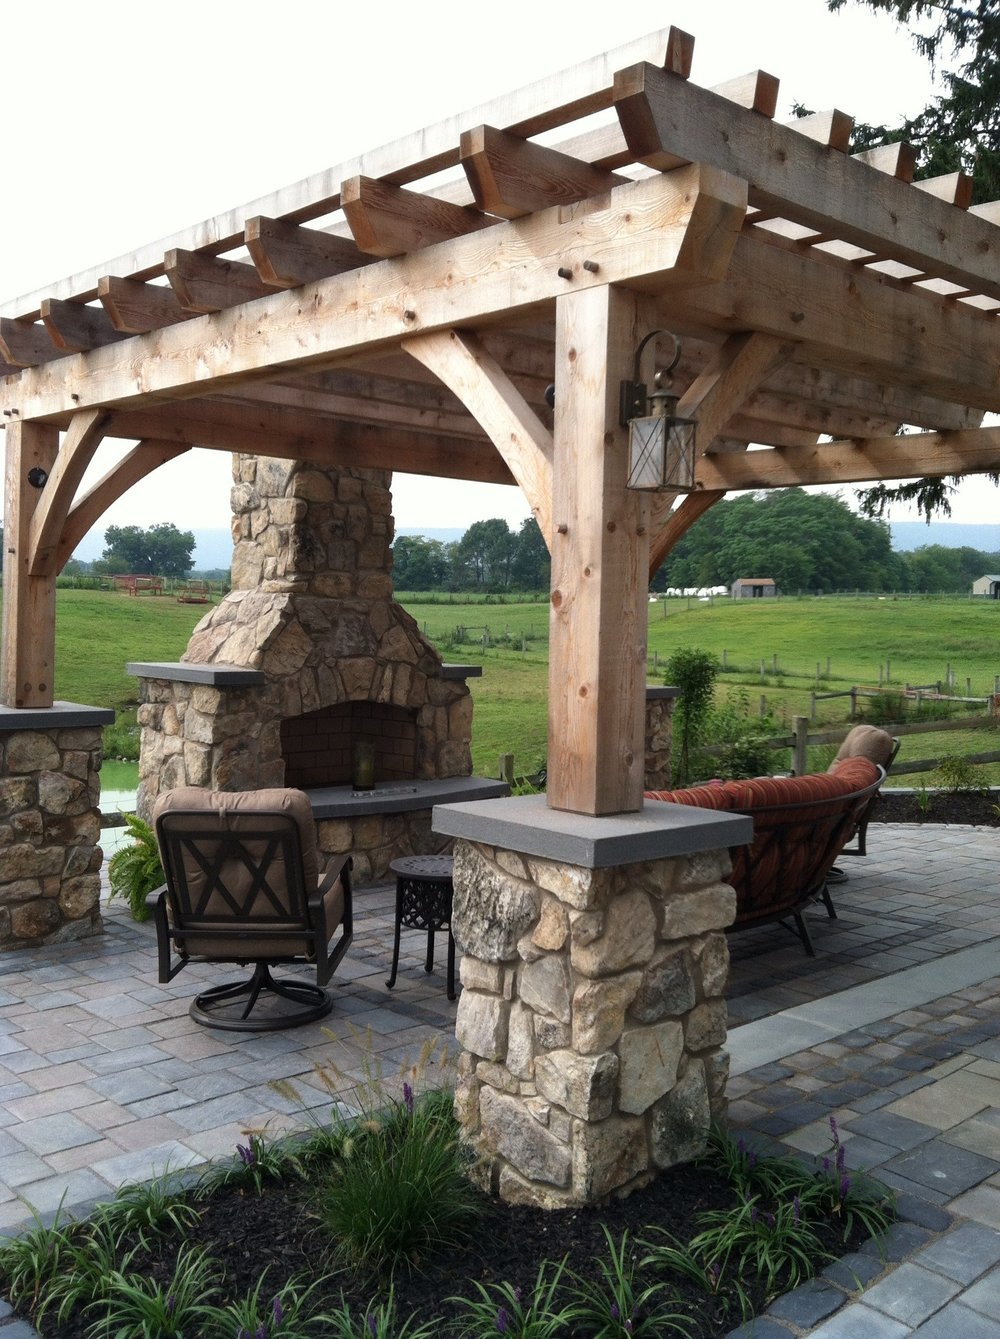 Professional landscape design with an outdoor fireplace in Schuylkill County, PA